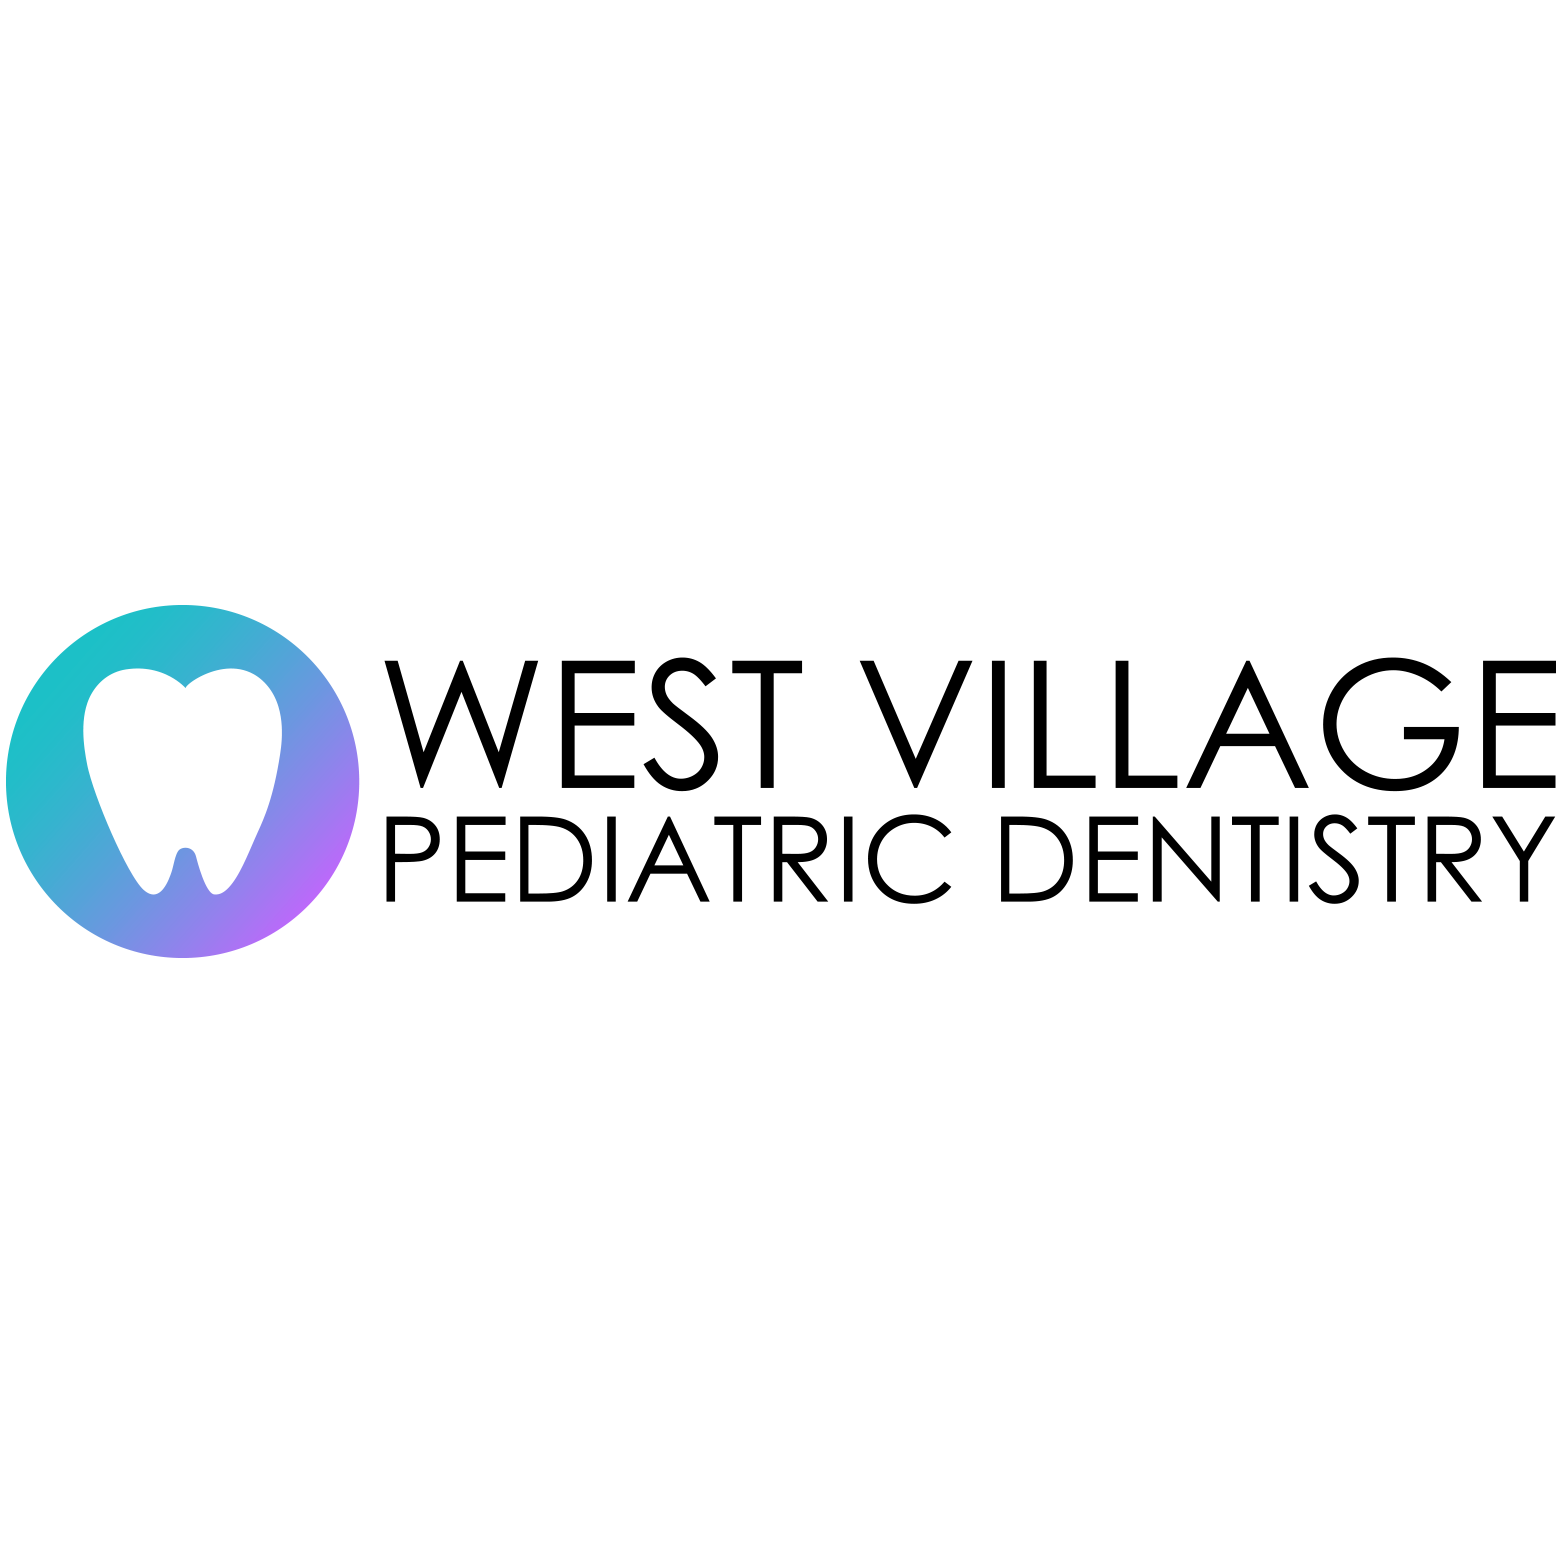 West Village Pediatric Dentistry: Carolina Escobedo, D.M.D.